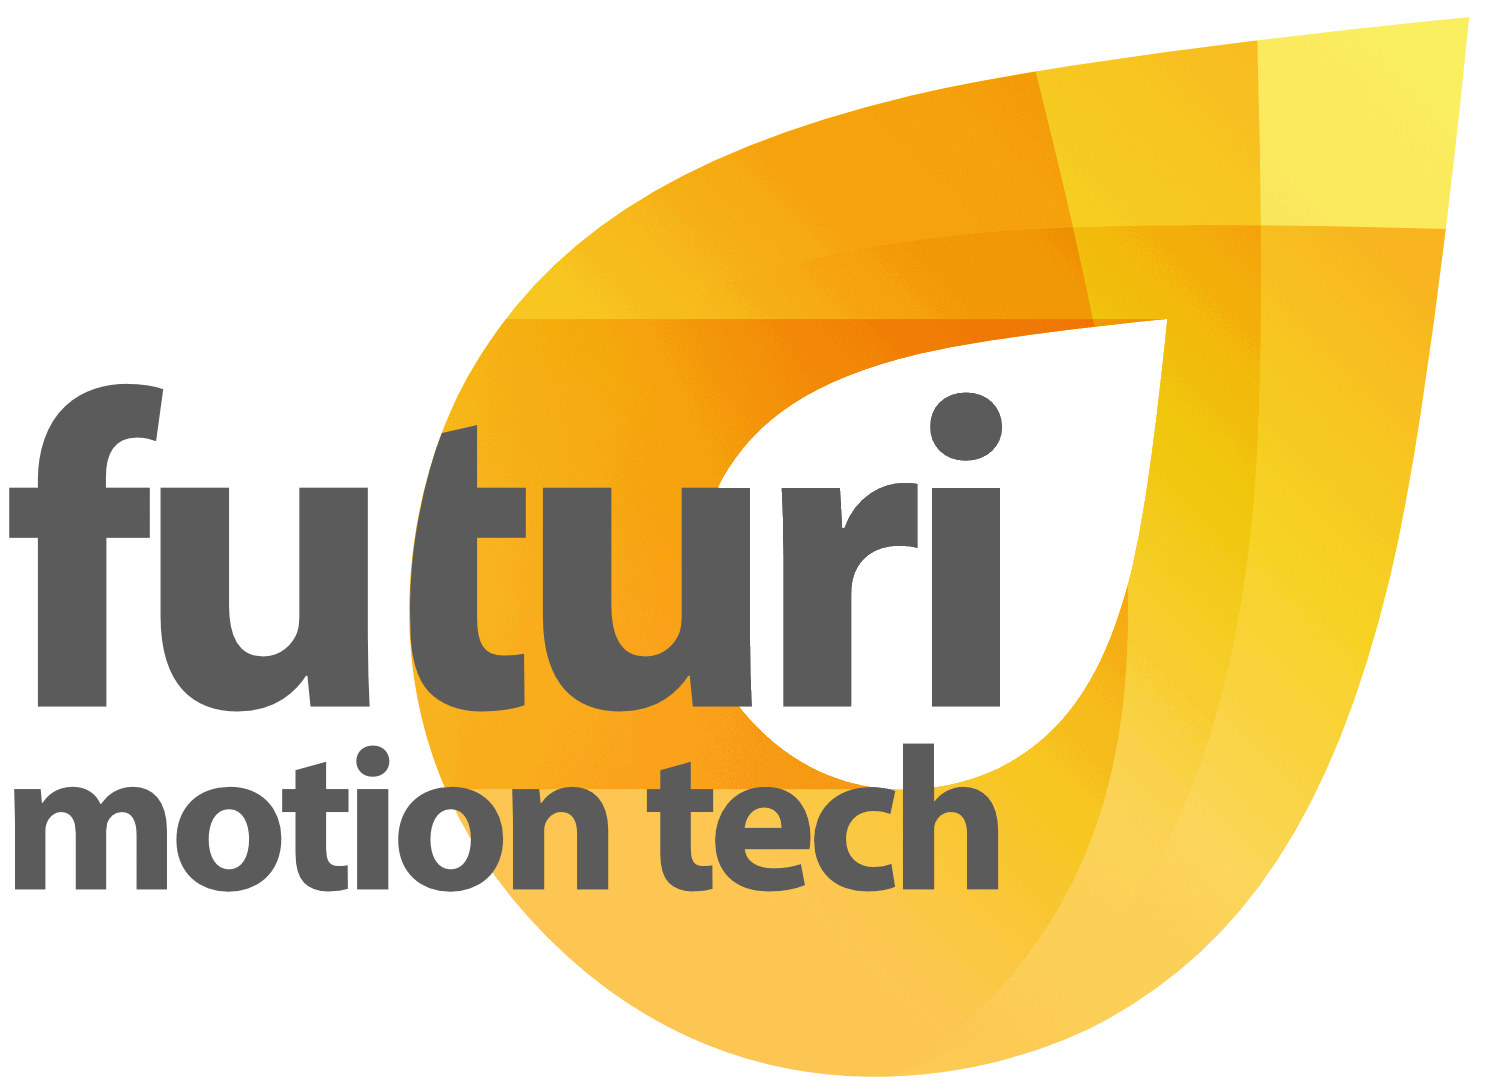 Futuri -Motion Tech-